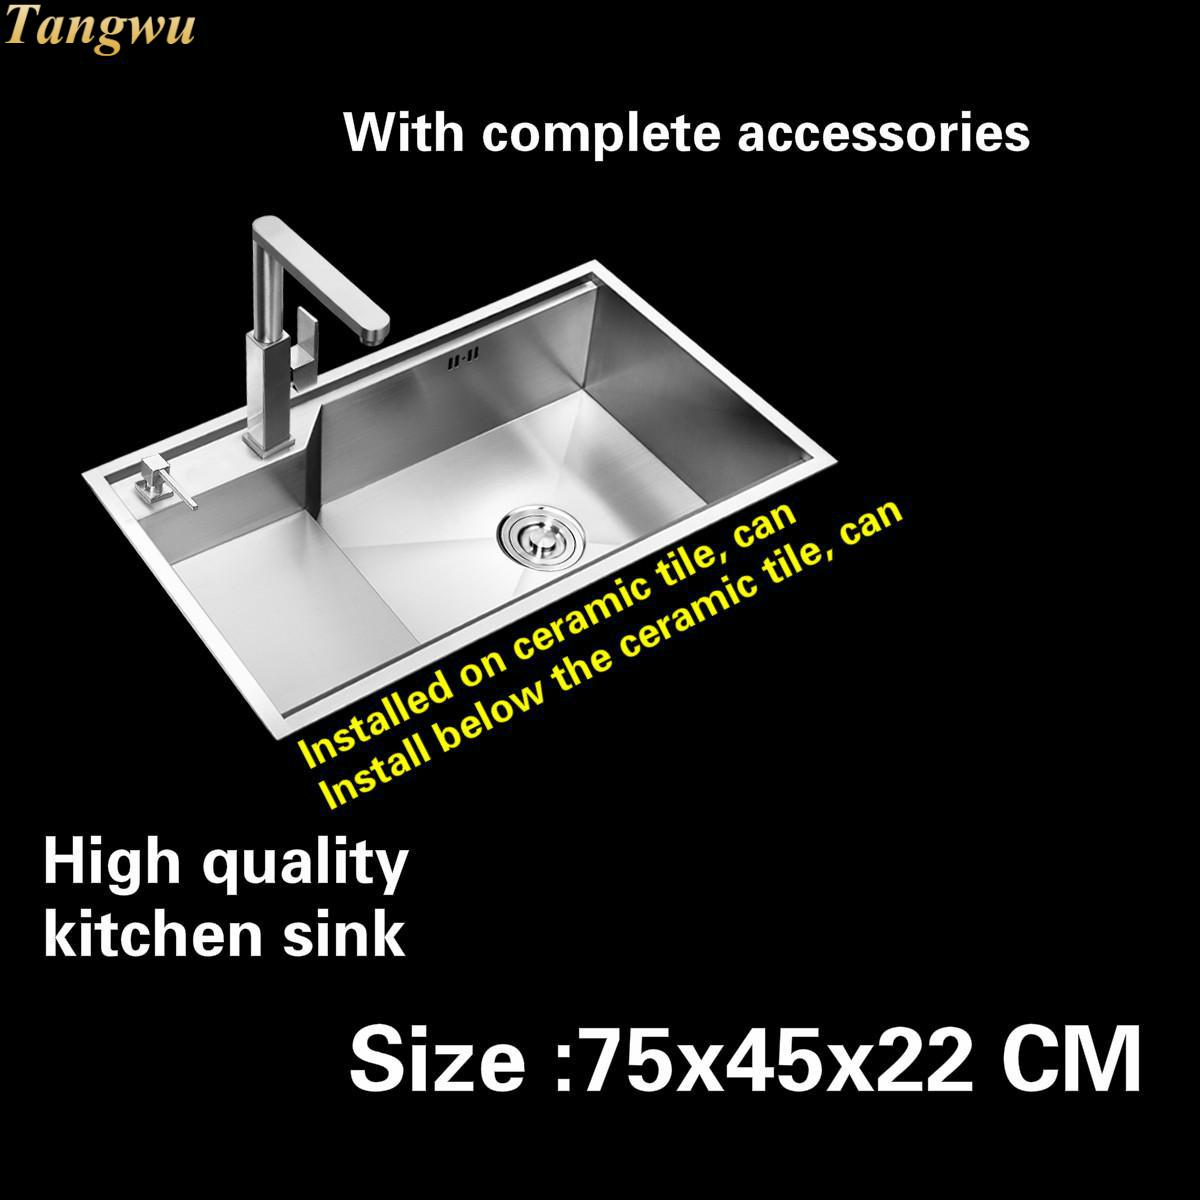 Tangwu High quality 4 mm thick food-grade 304 stainless steel kitchen sink durable handmade large single slot 75x45x22 CM free shipping food grade 304 stainless steel hot sell kitchen sink double trough 0 8 mm thick ordinary 78x43 cm